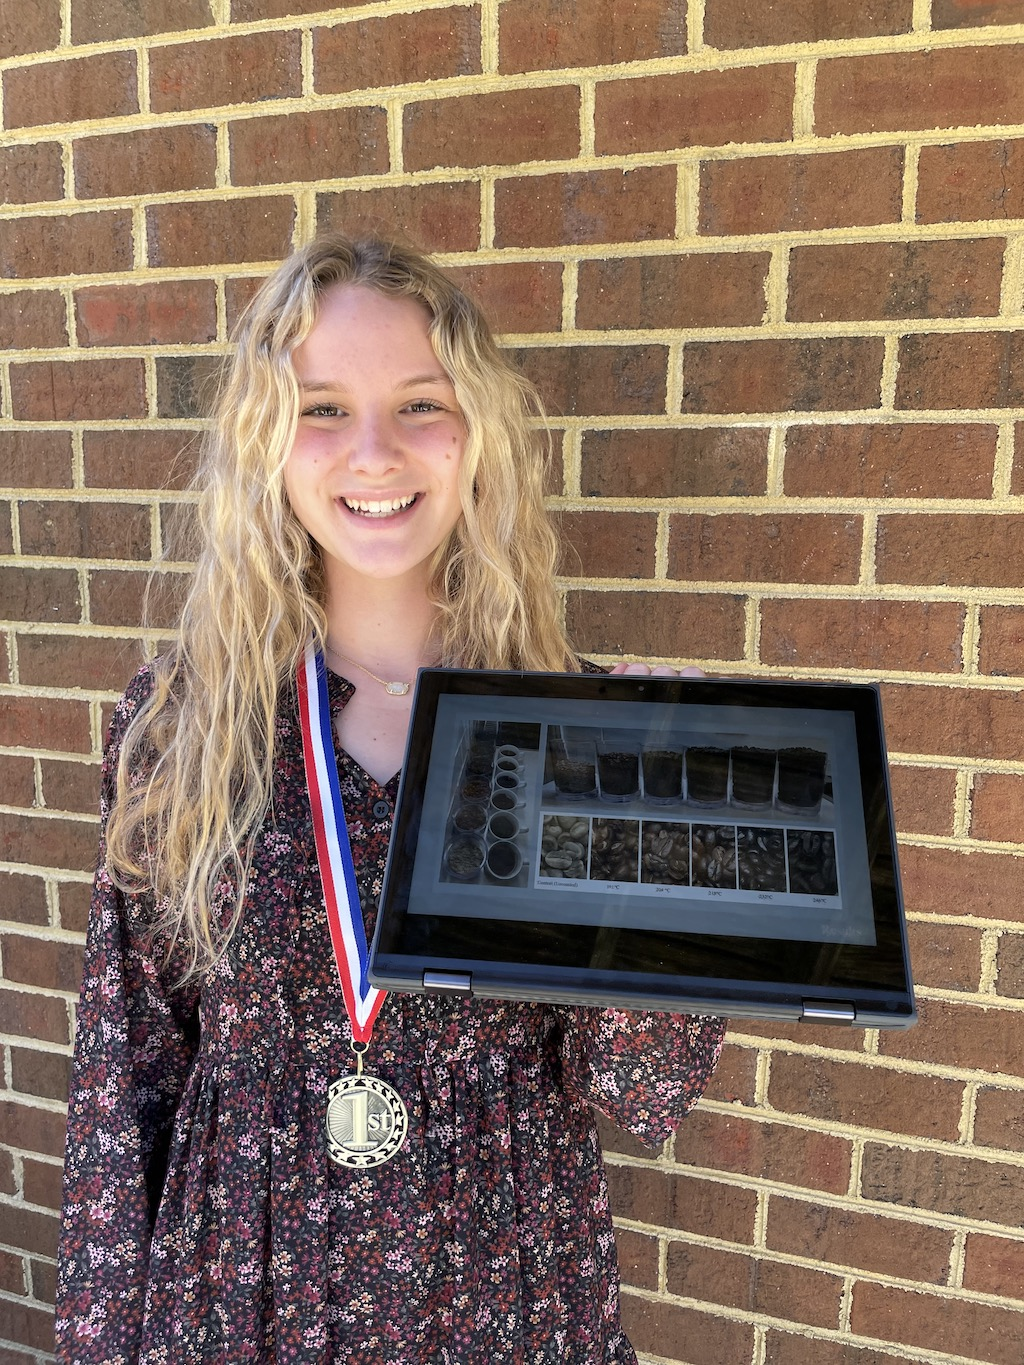 Jamestown student wearing medal and showing science project on tablet